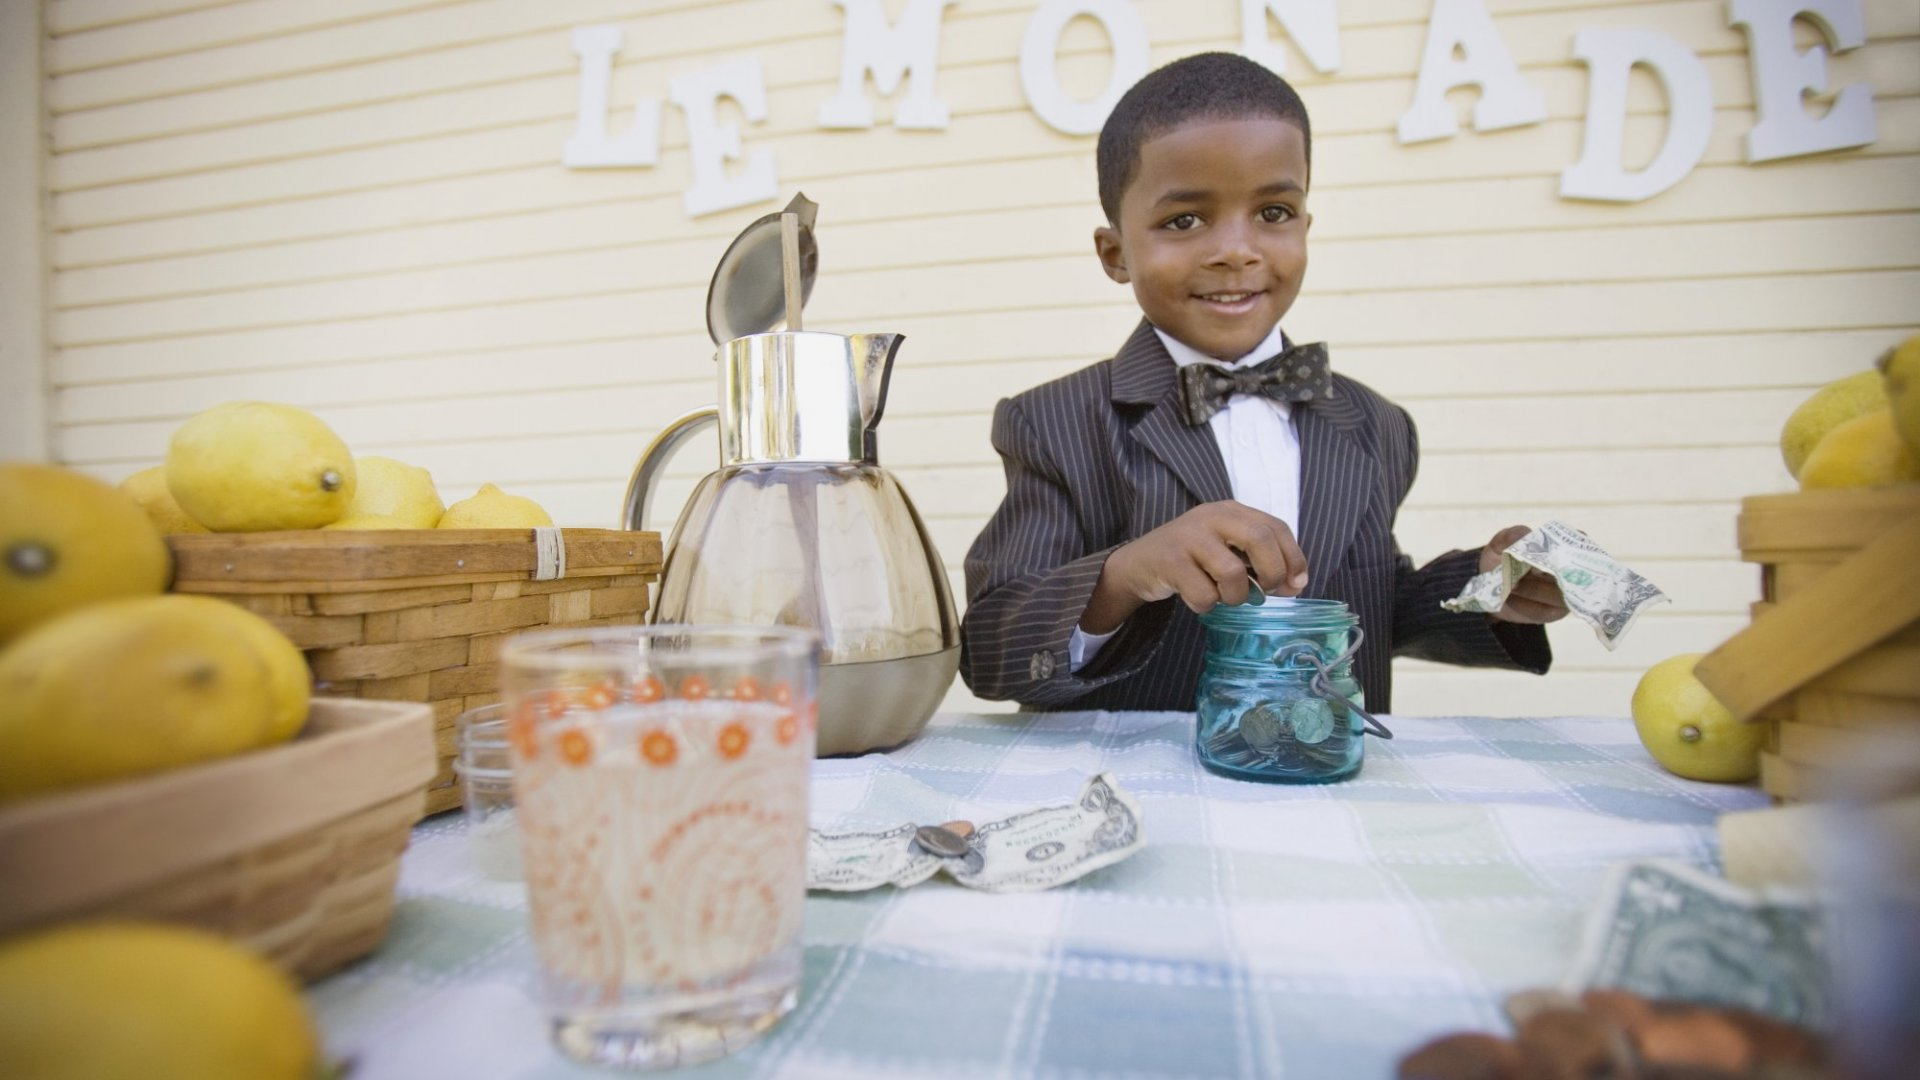 5 Simple Sales Lessons From a Lemonade Stand